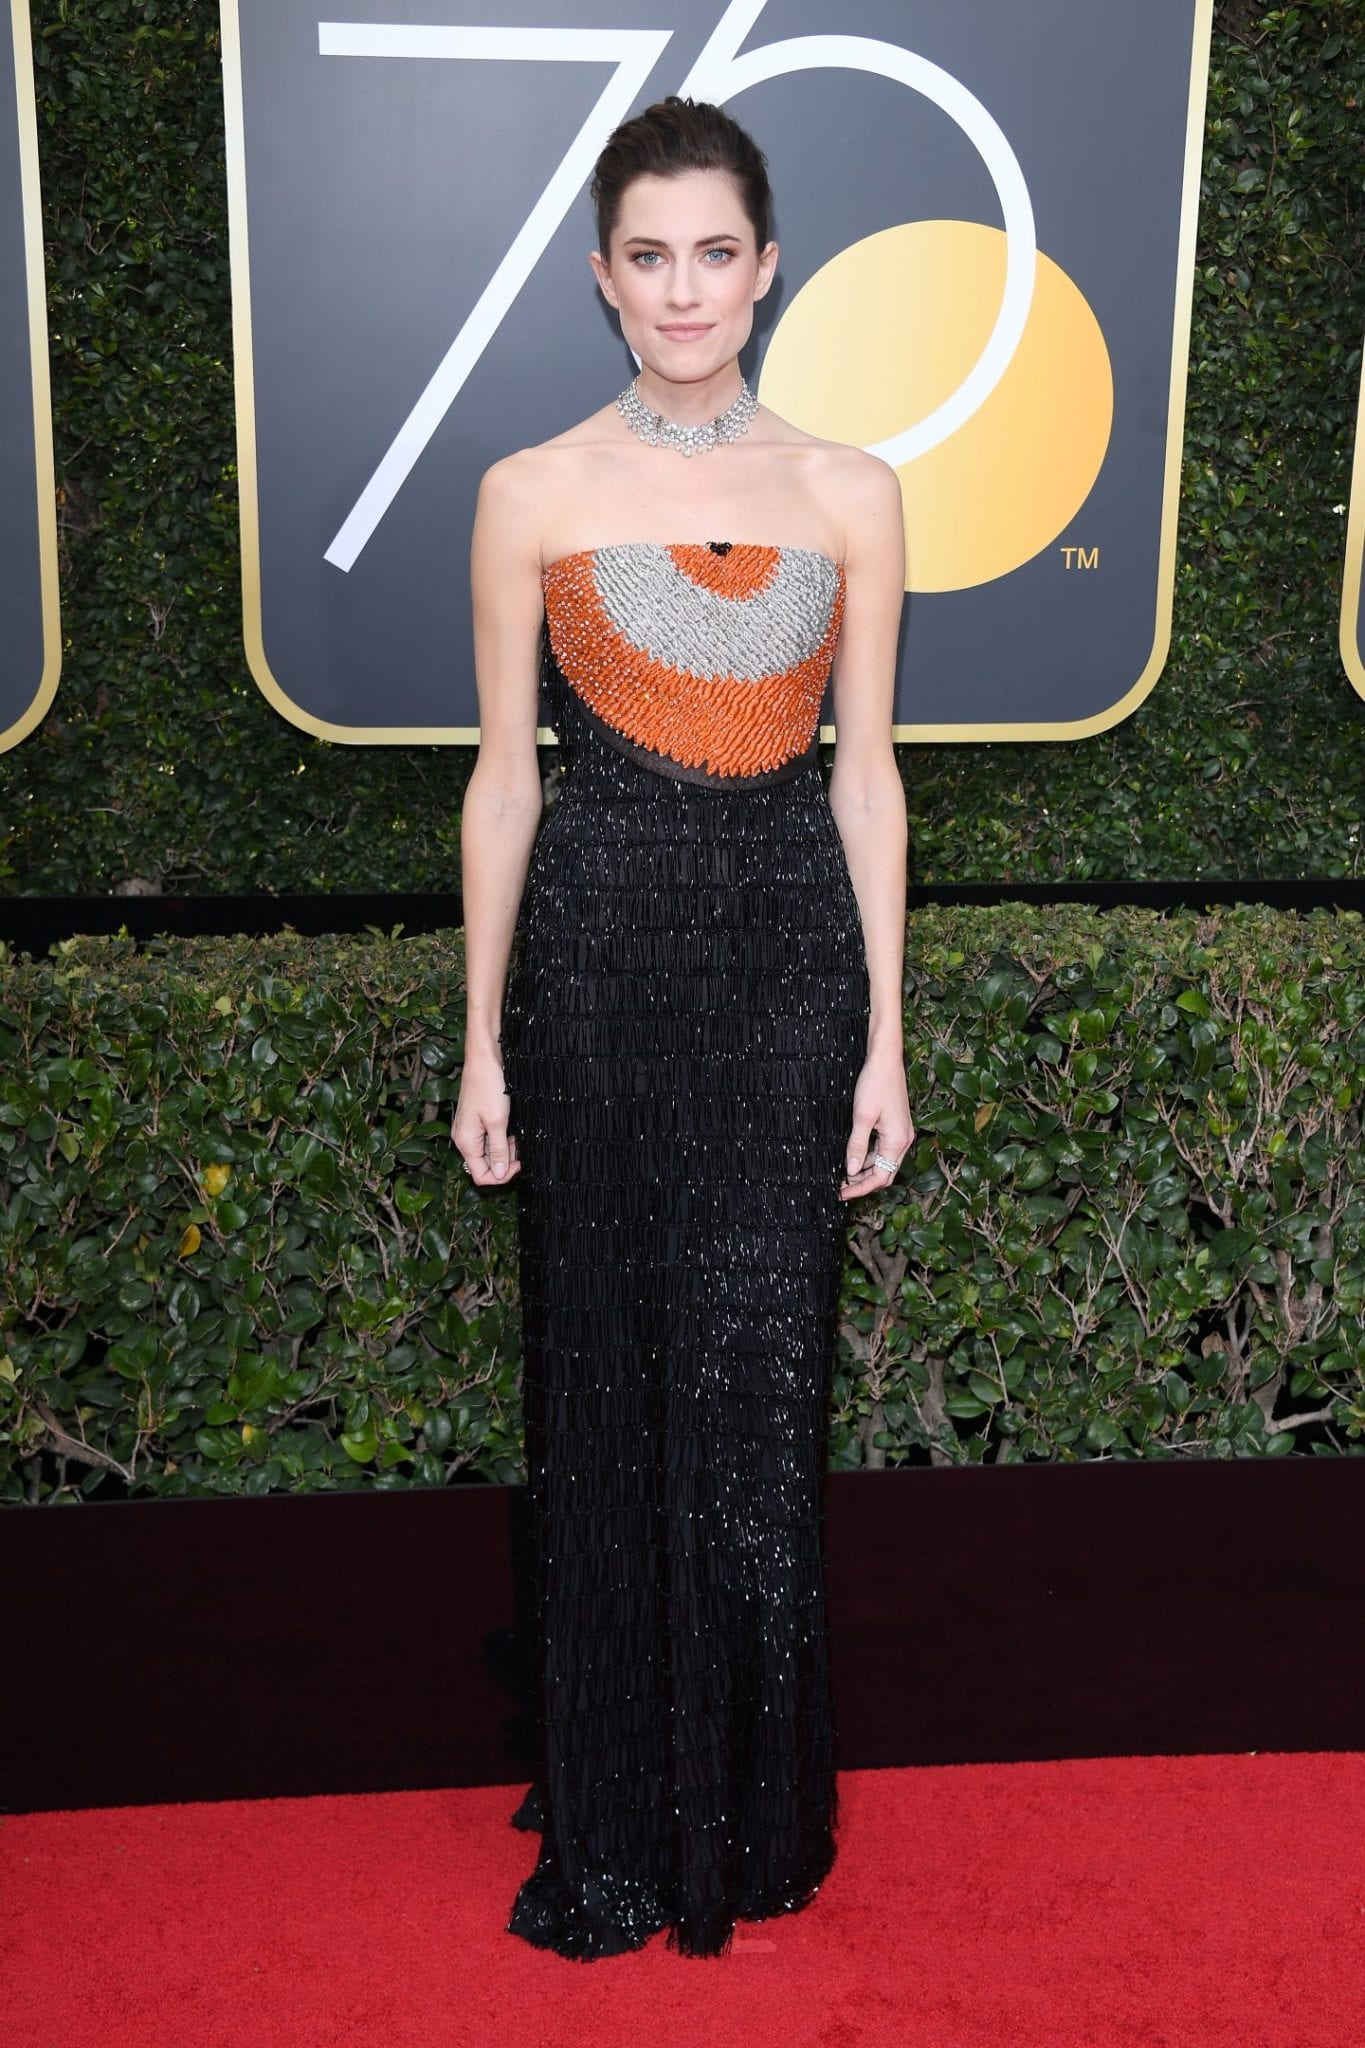 golden globes, best dresses, allison williams, times up, gowns, fashion, style